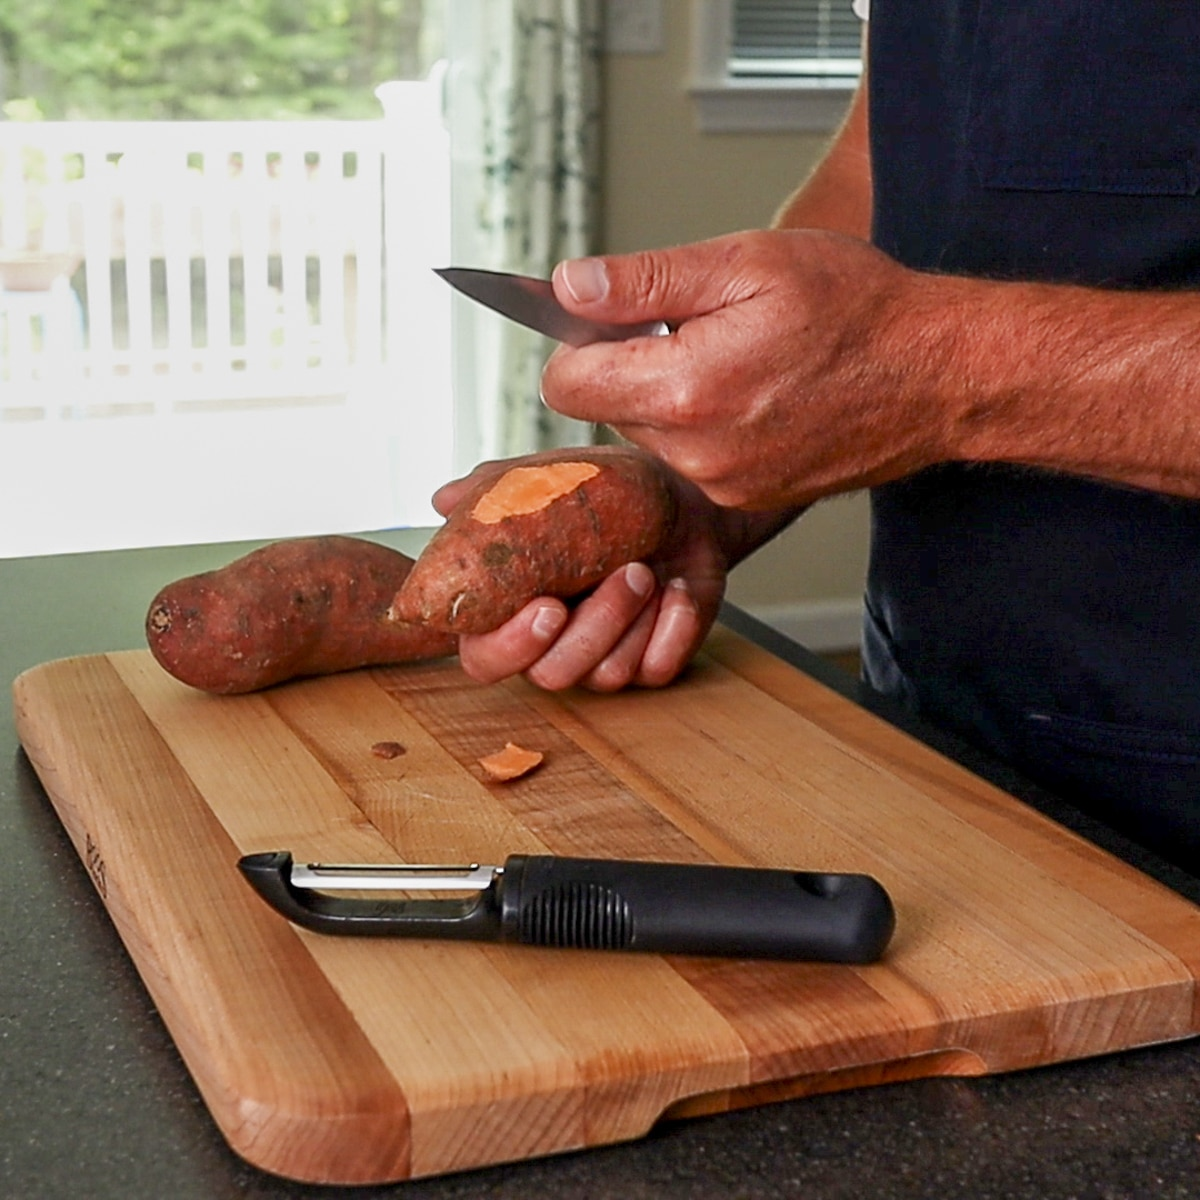 using a pairing knife and a peeler to peel a potato.